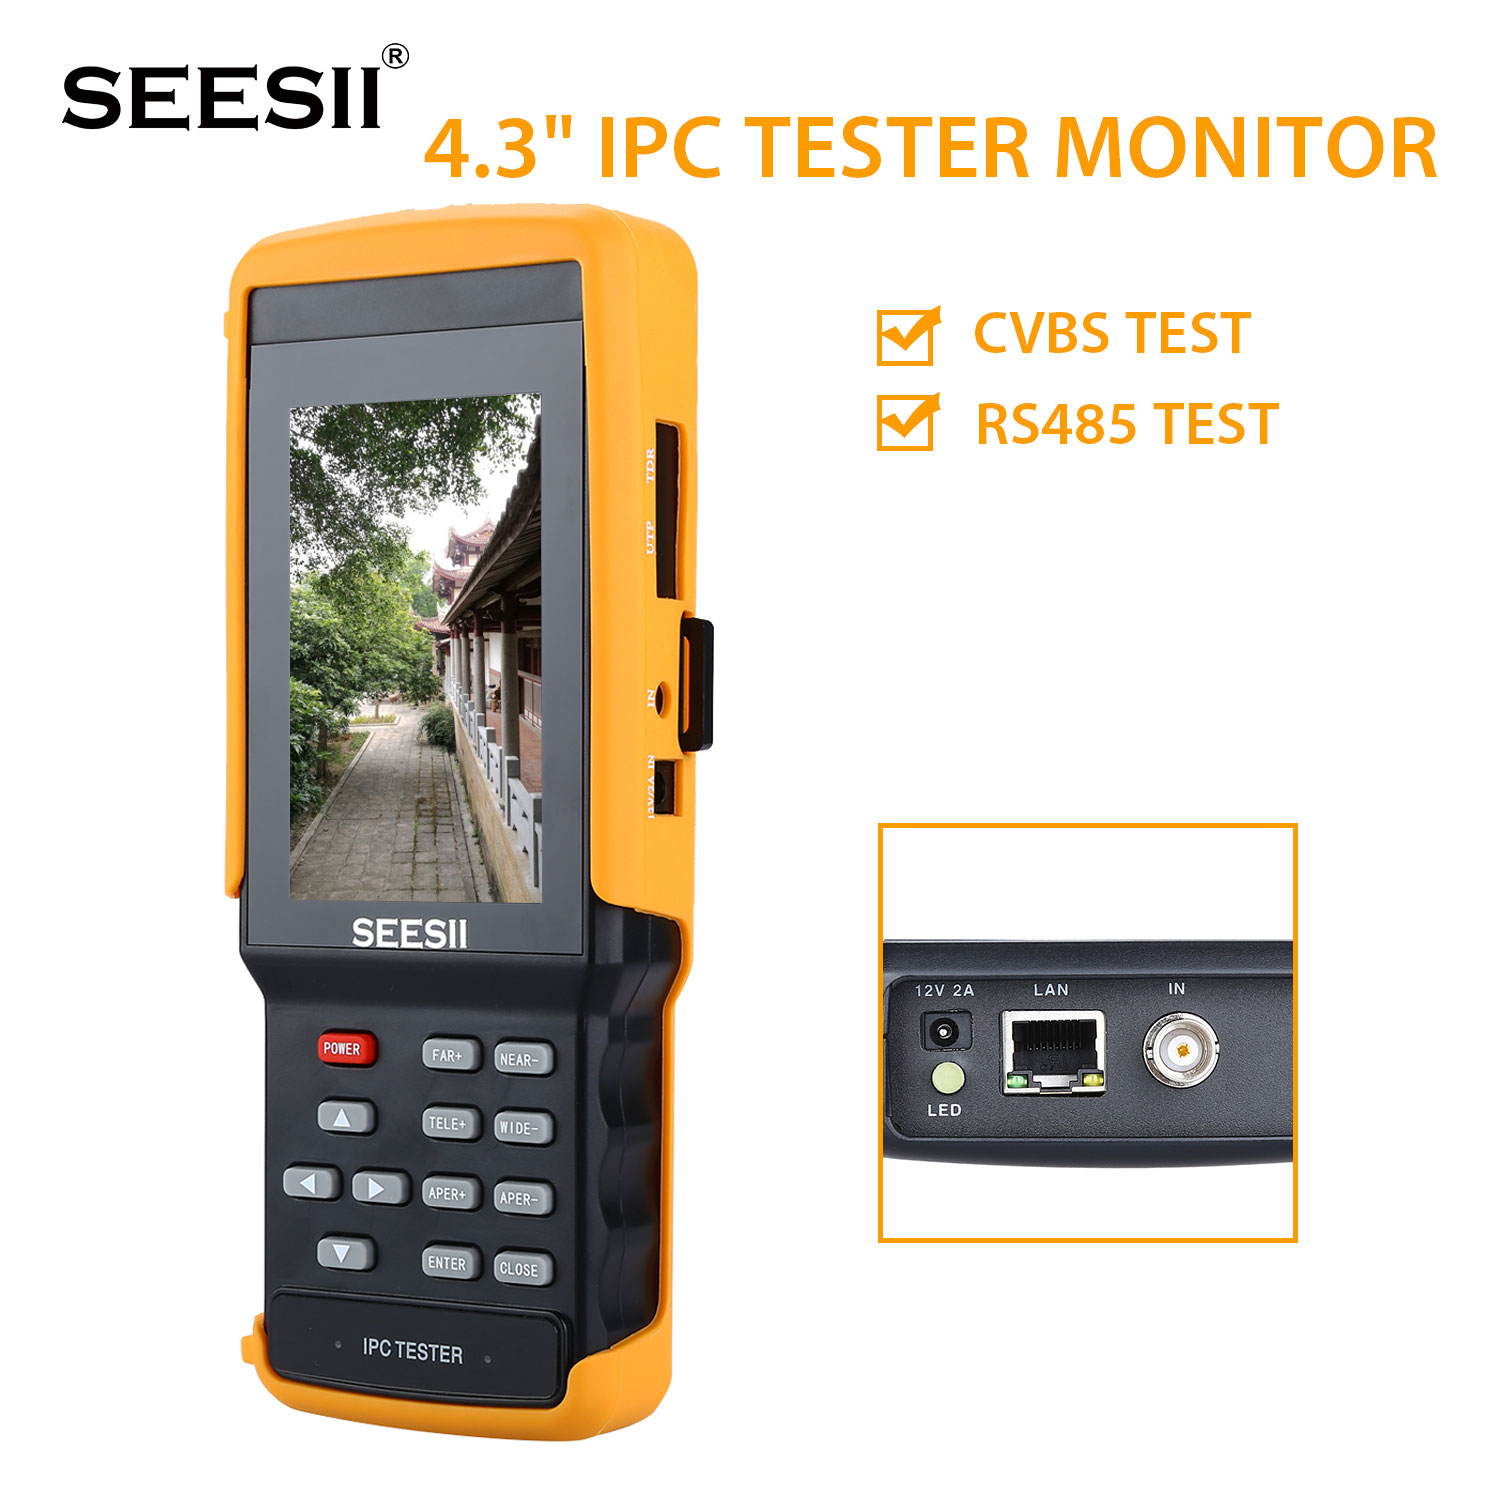 IPC9300 IPC/wifi/TVI/CVI/Analog 4.3'' Touchscreen CCTV Tester for IP/Analog Camera 1080P BNC Network Cable Tester WIFI 8GB ipc9300 ipc wifi ahd tvi cvi analog 4 3 touchscreen cctv tester for ip analog camera 1080p bnc network cable tester wifi 8gb